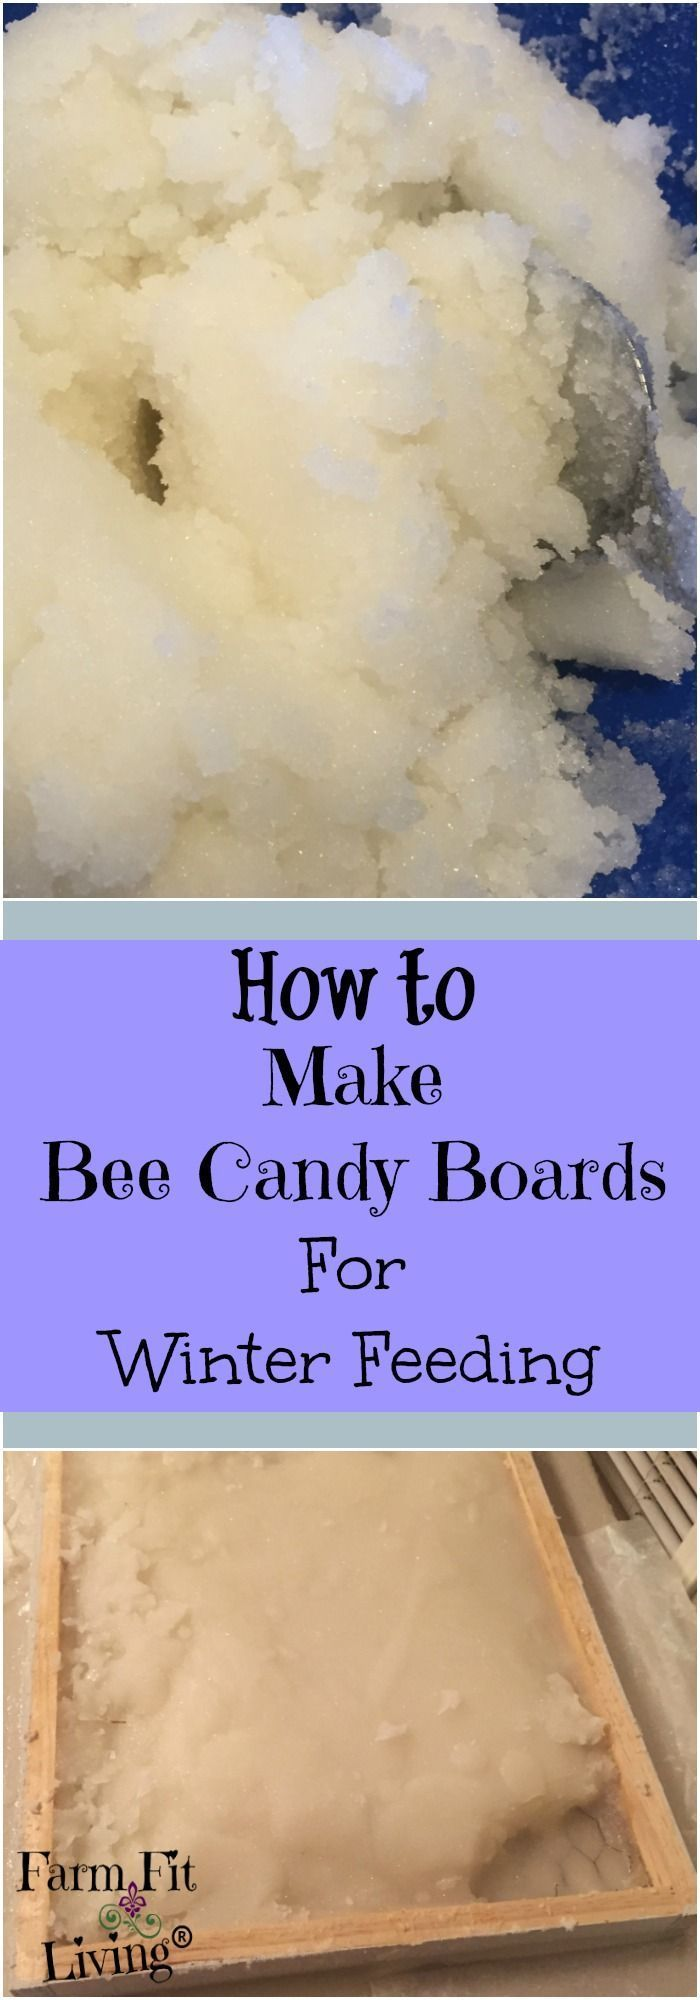 Winter Bee Feeding | Feeding Bees In Winter | Beekeeping DIY | How to Make Bee Candy Boards